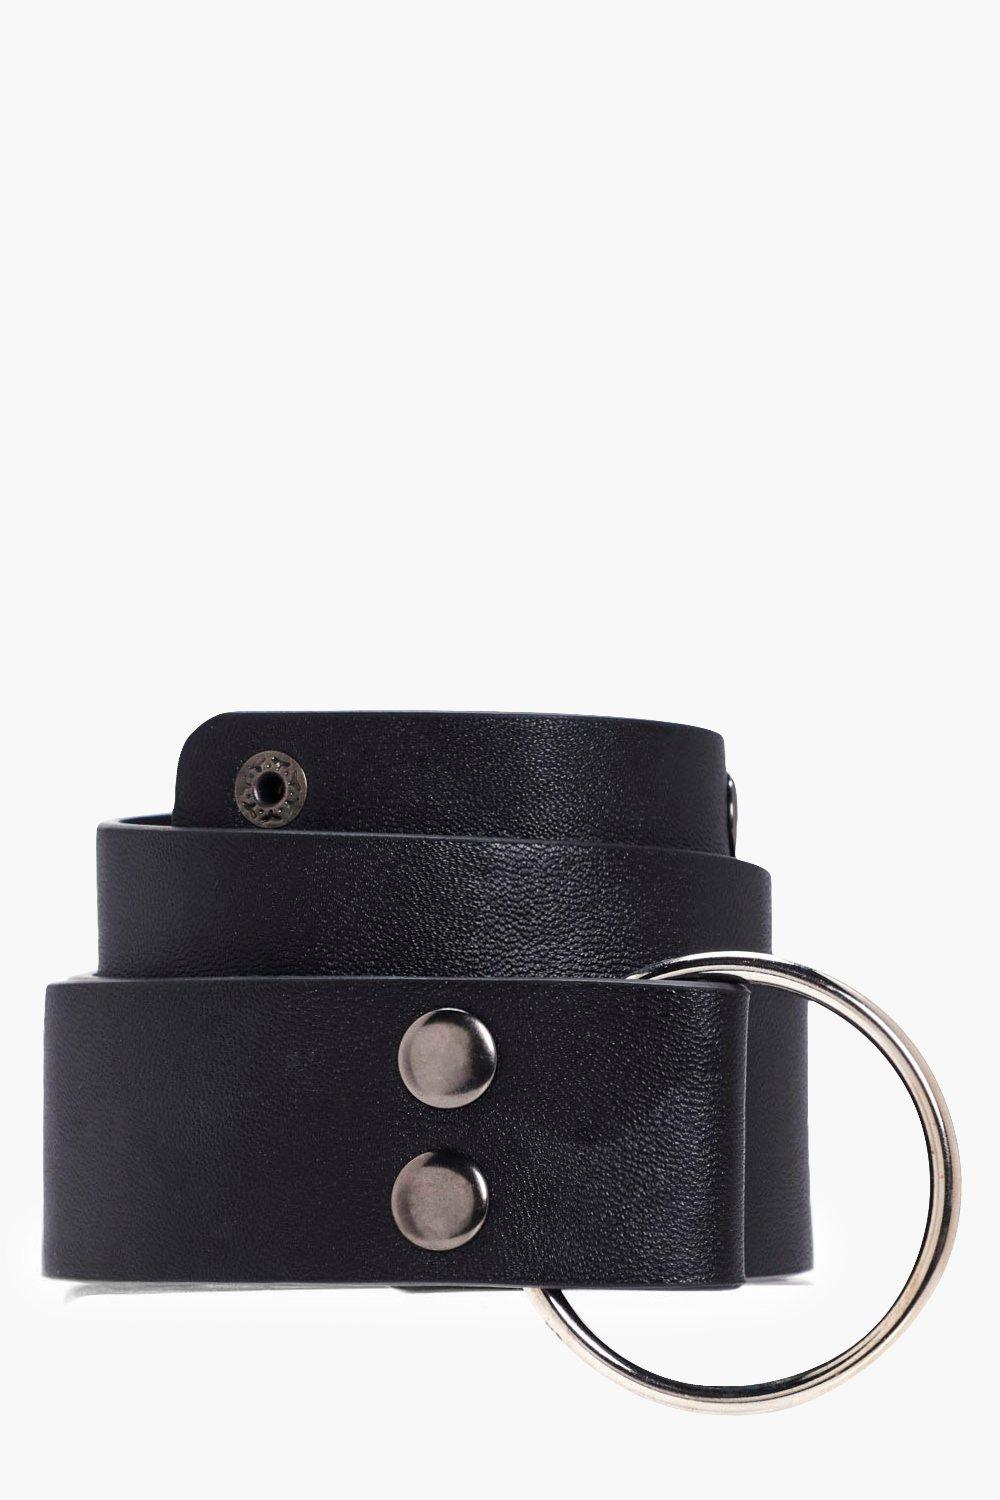 O-Ring Popper Stud Boyfriend Belt - black - Emma O